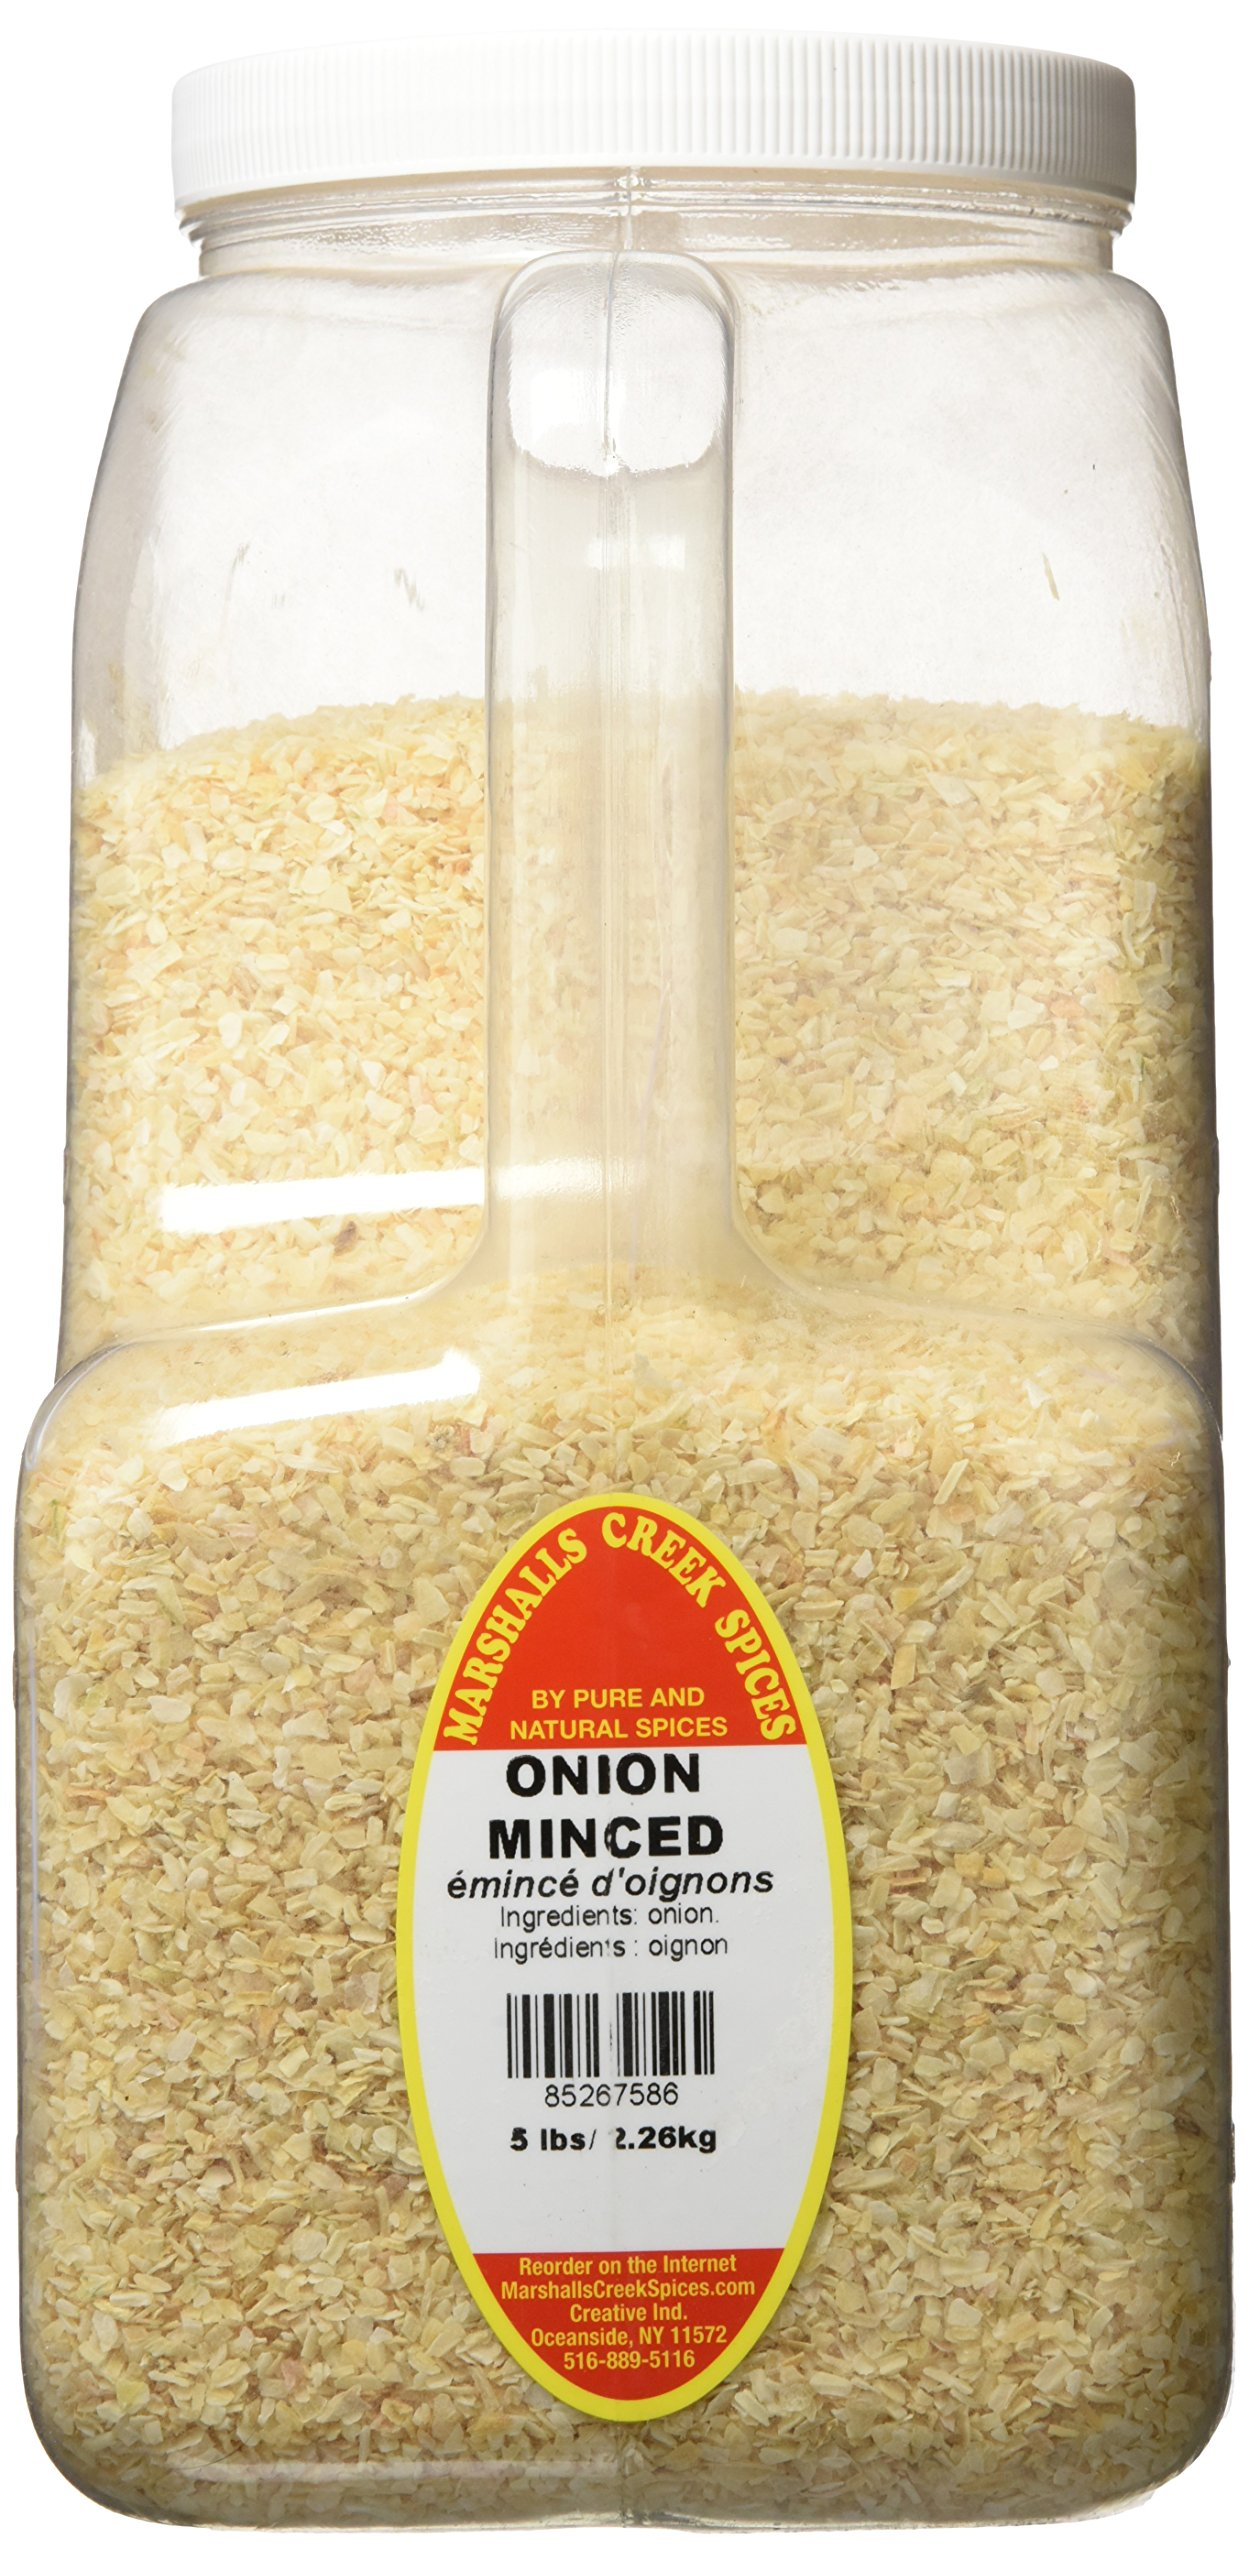 Marshalls Creek Spices Minced Onion, XX-Large, 5 Pound by Marshall's Creek Spices (Image #1)